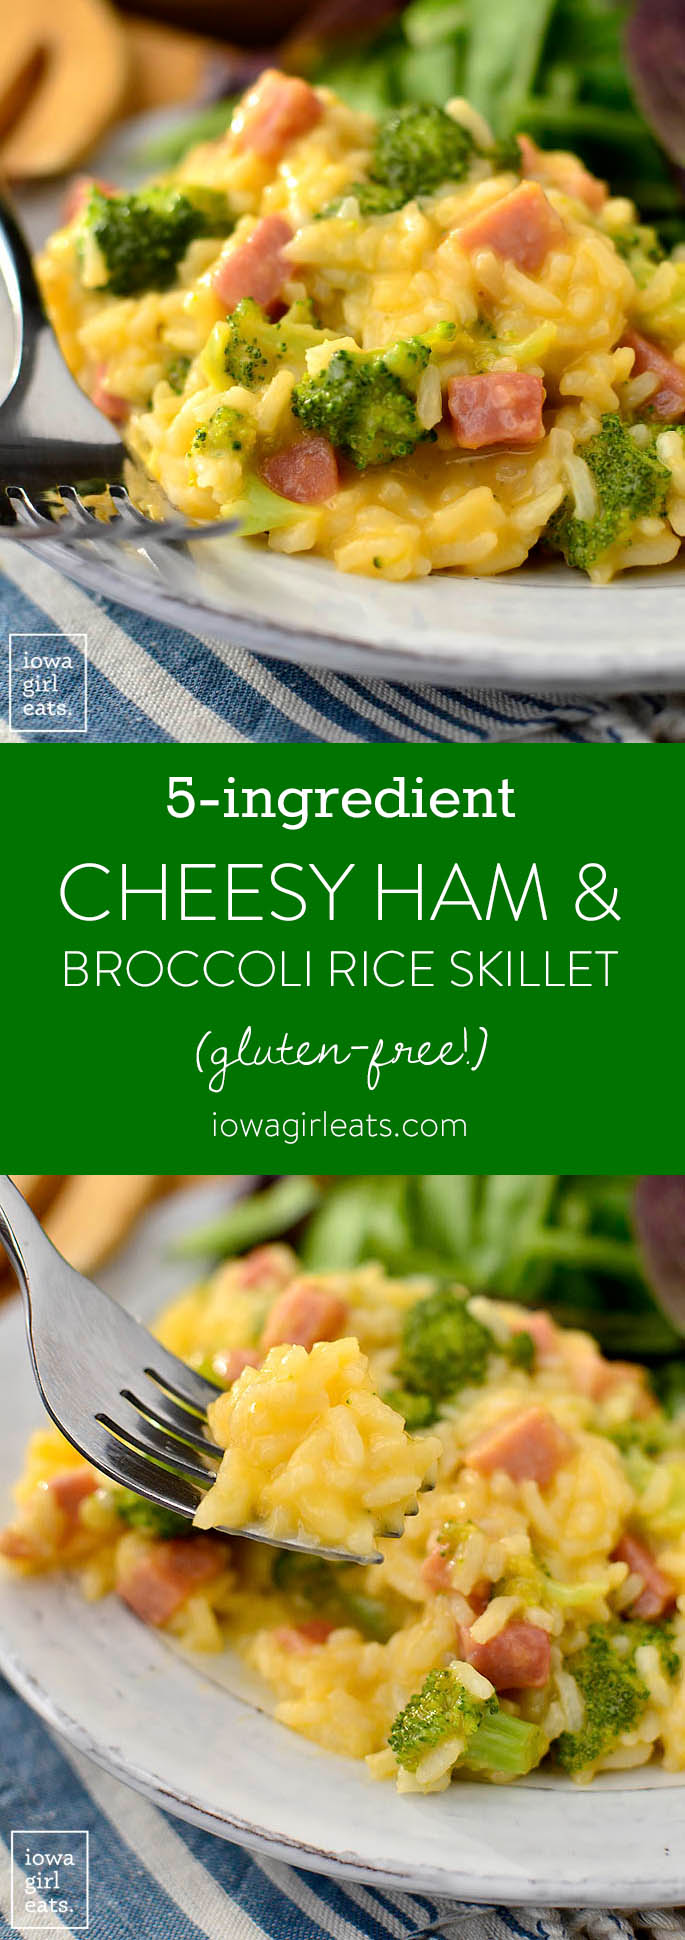 5-Ingredient Cheesy Ham and Broccoli Rice Skillet is a 1 pan, 20 minute, gluten-free dinner recipe that will leave you licking your plate clean! | iowagirleats.com